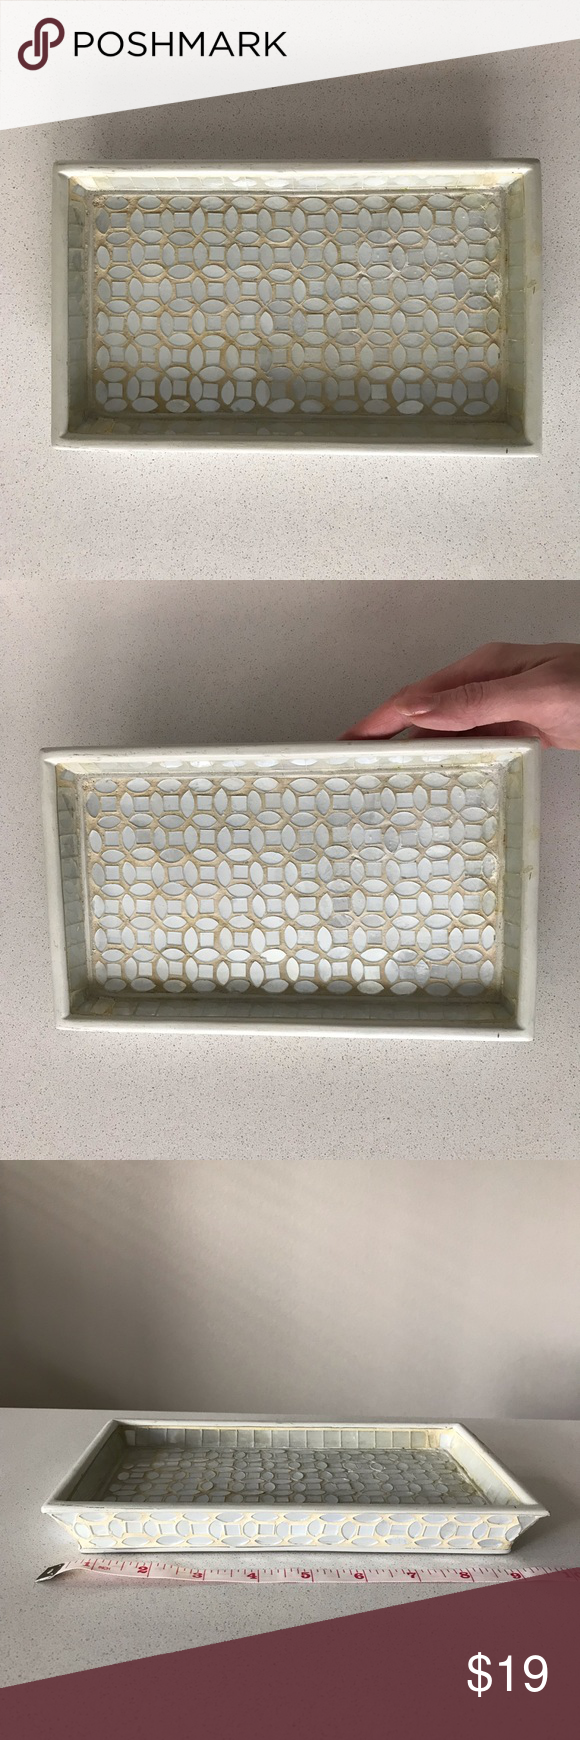 Bbb Bathroom Tray Purchased From Bed Bath Beyond Doesn T Match